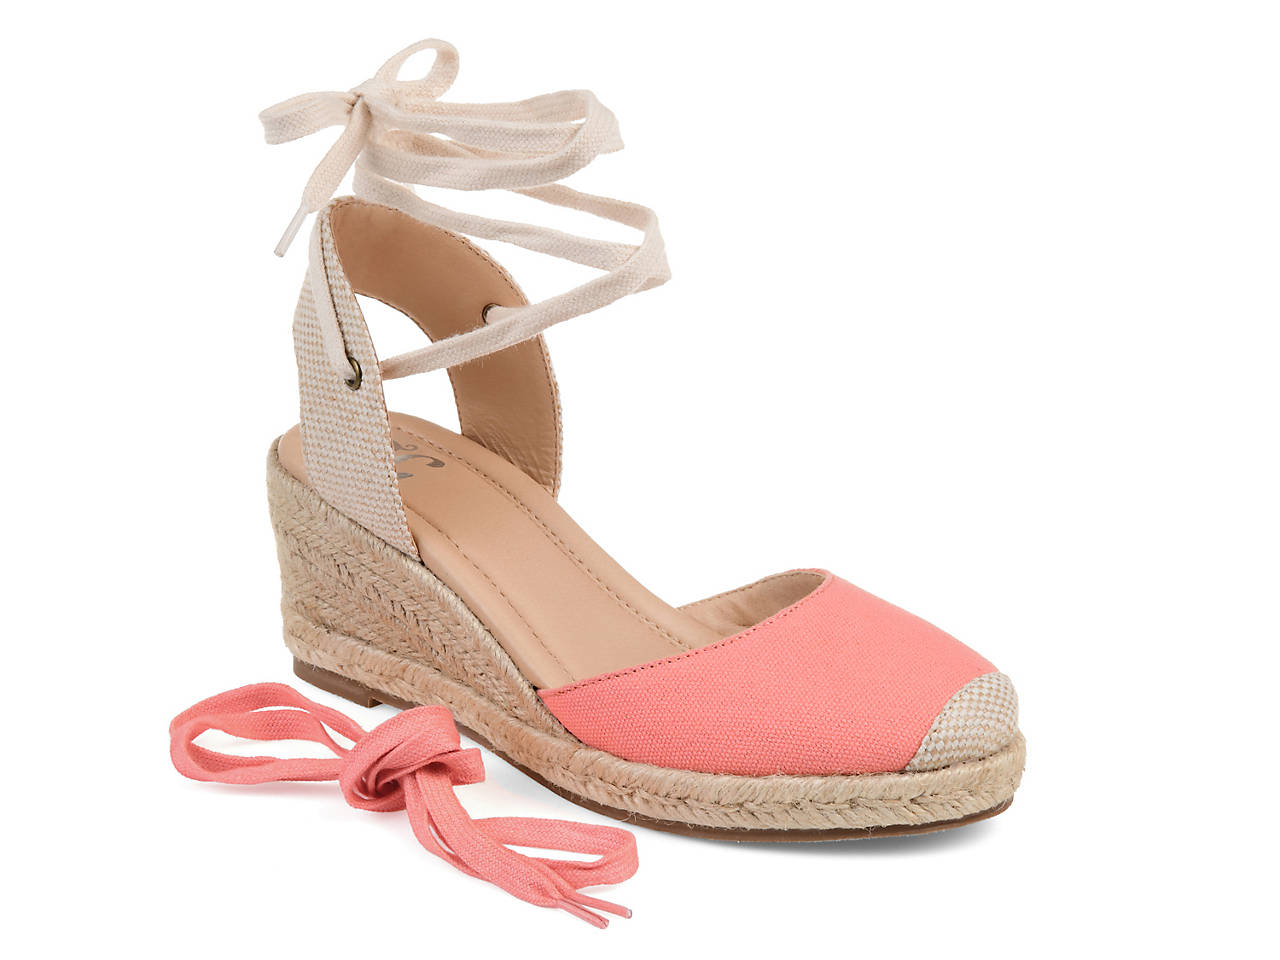 90550f9107a0 Journee Collection Monte Espadrille Wedge Sandal Women s Shoes